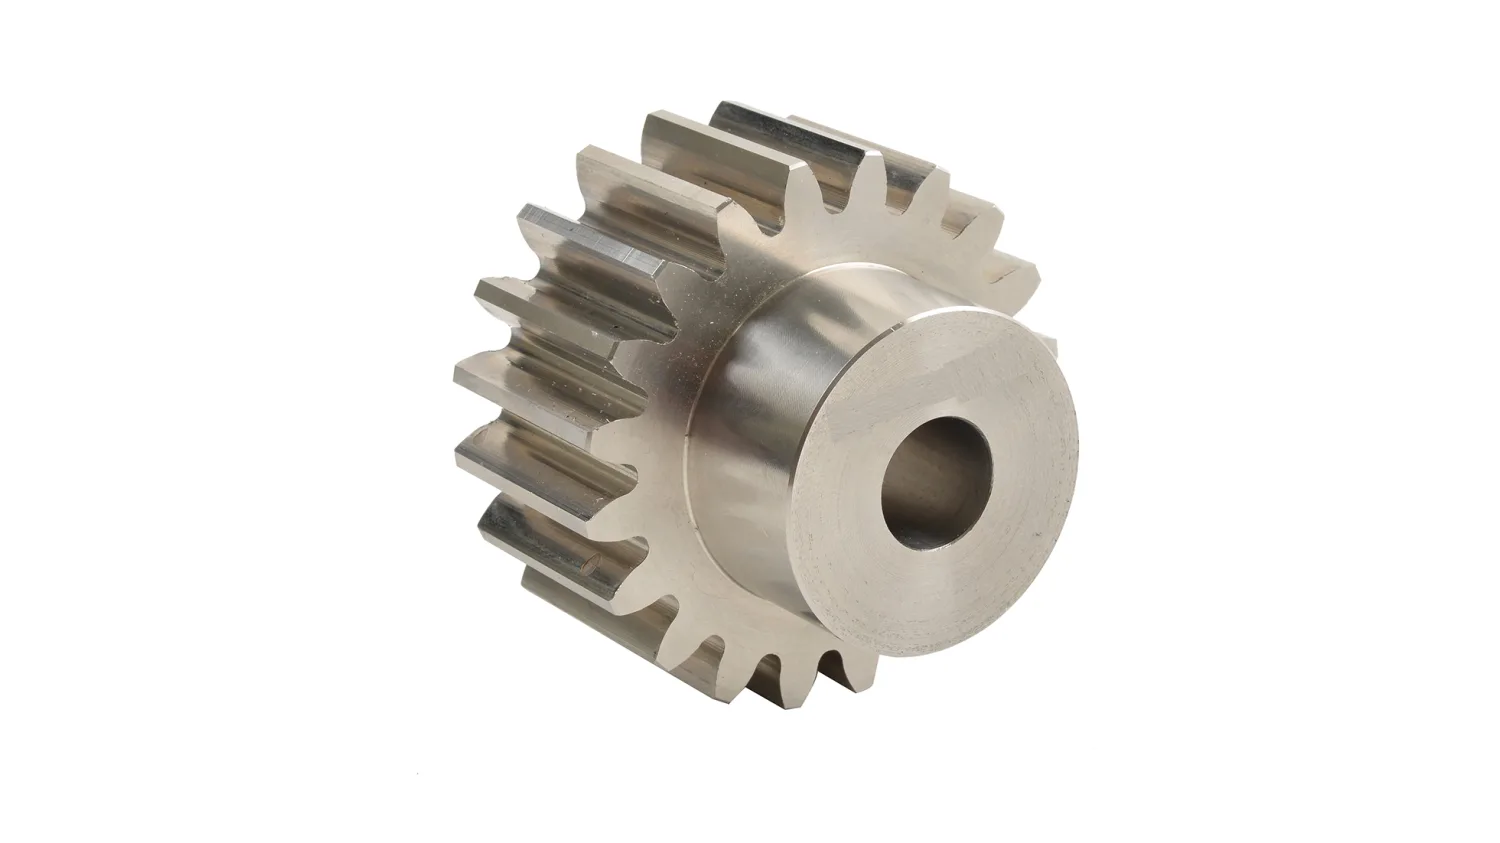 1-25-Mod-x-40-Tooth-Metric-Spur-Gear-in-Steel